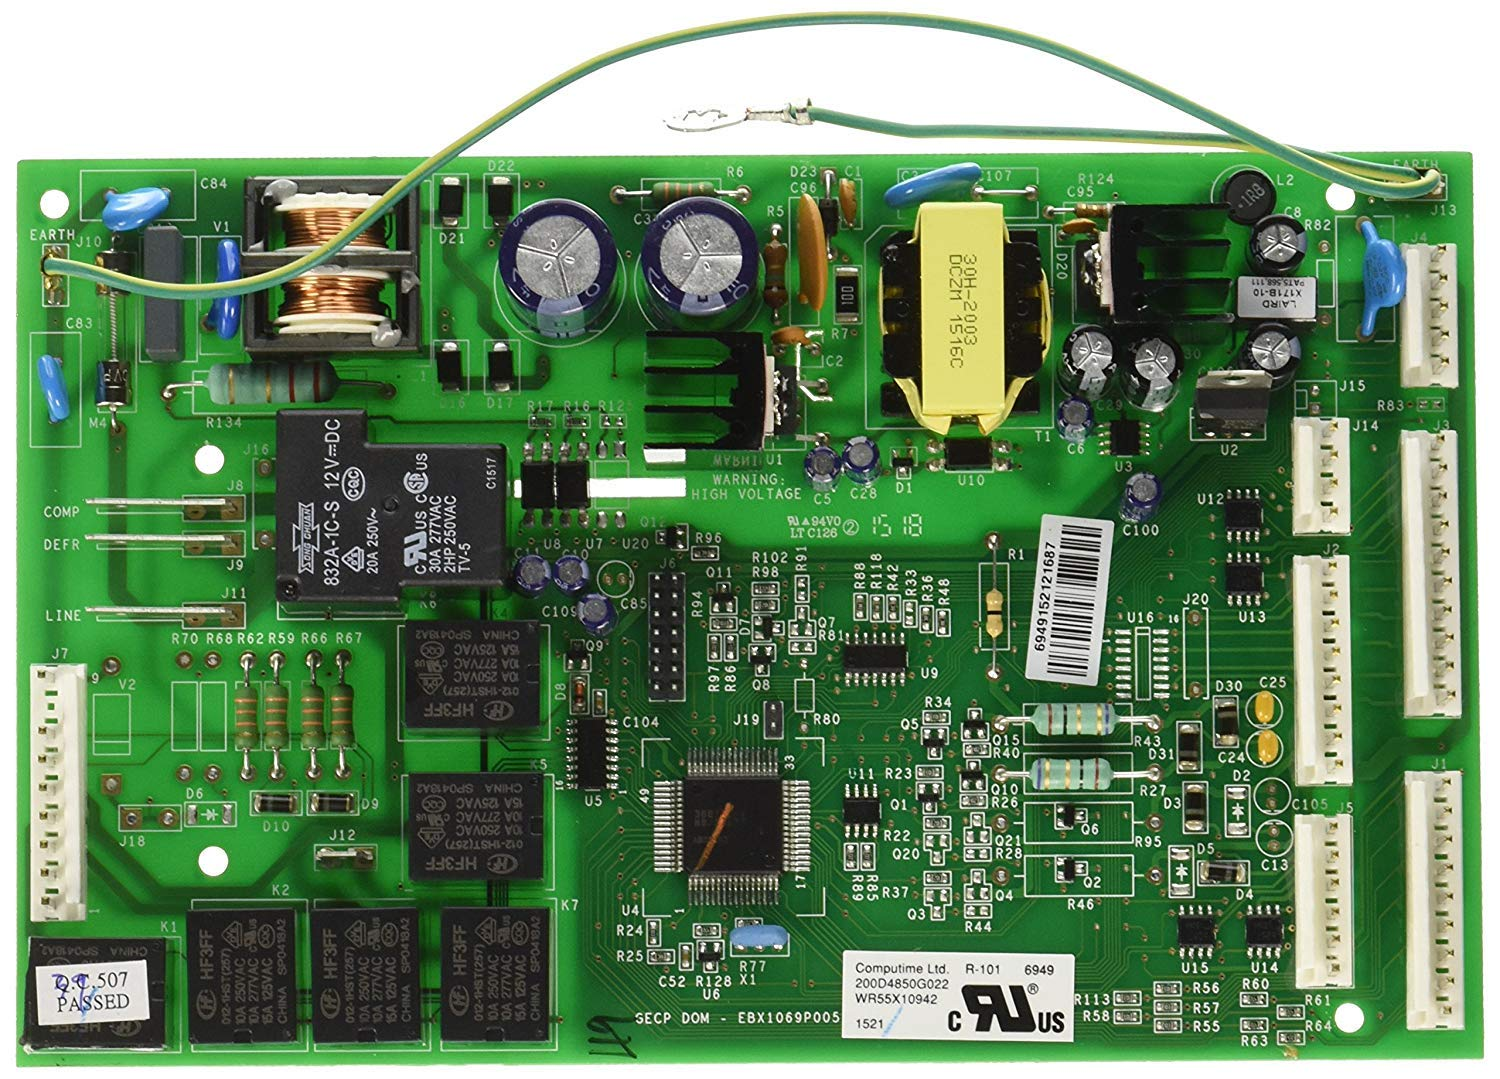 NEW WR55X10775, WR55X11072, WR55X11130 Control Board Motherboard for GE Refrigerator 200d4852g010 by Primeco Supply - 1 YEAR WARRANTY by PRIMECO